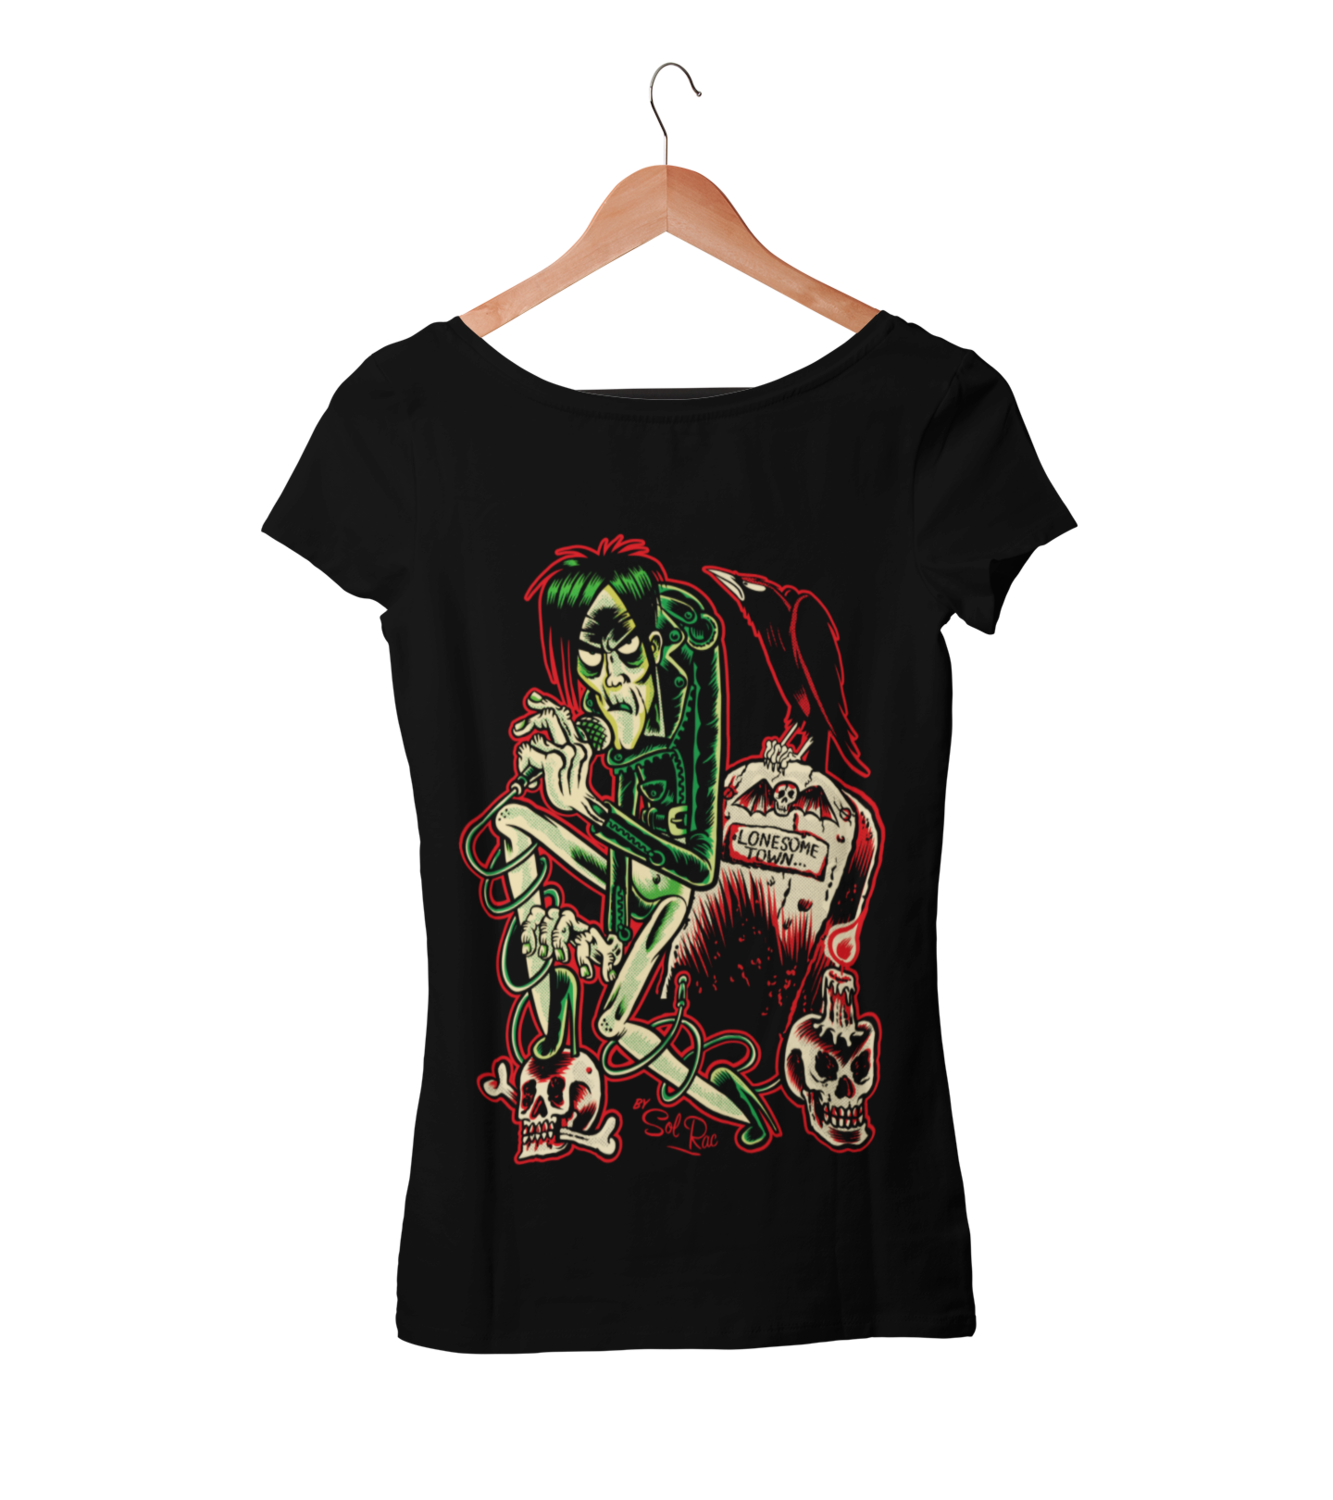 LUX INTERIOR T-SHIRT WOMAN BY SOL RAC